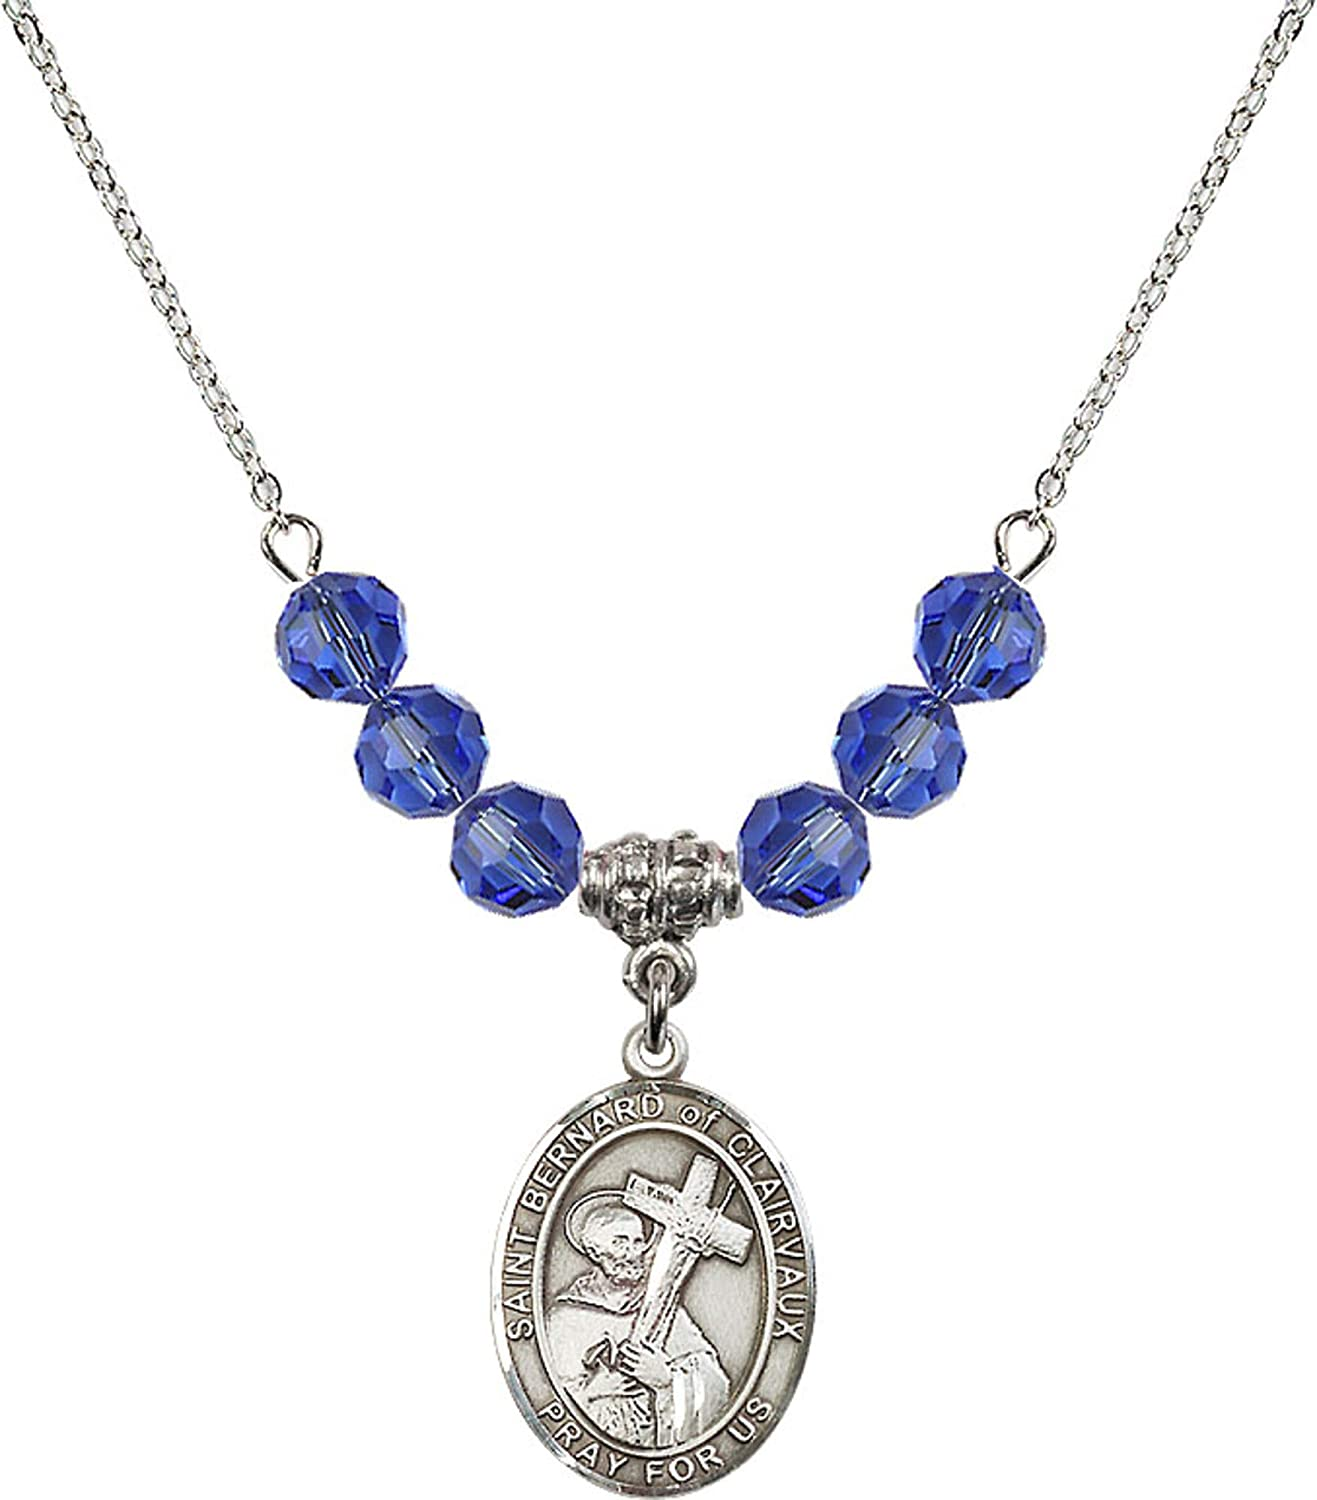 Bonyak Jewelry 18 Inch Rhodium Plated Necklace w// 6mm Blue September Birth Month Stone Beads and Saint Bernard of Clairvaux Charm